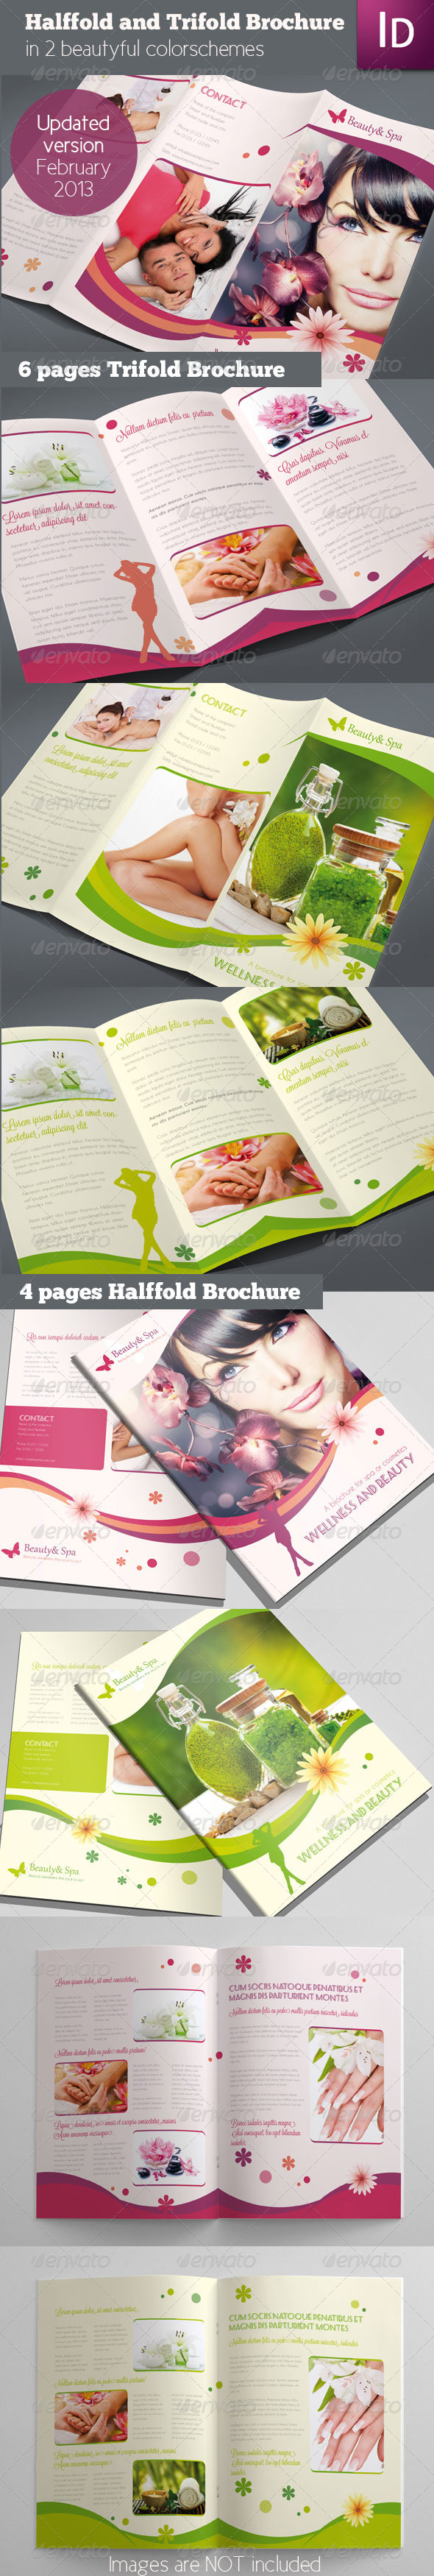 Set of 2 Brochures - Corporate Brochures